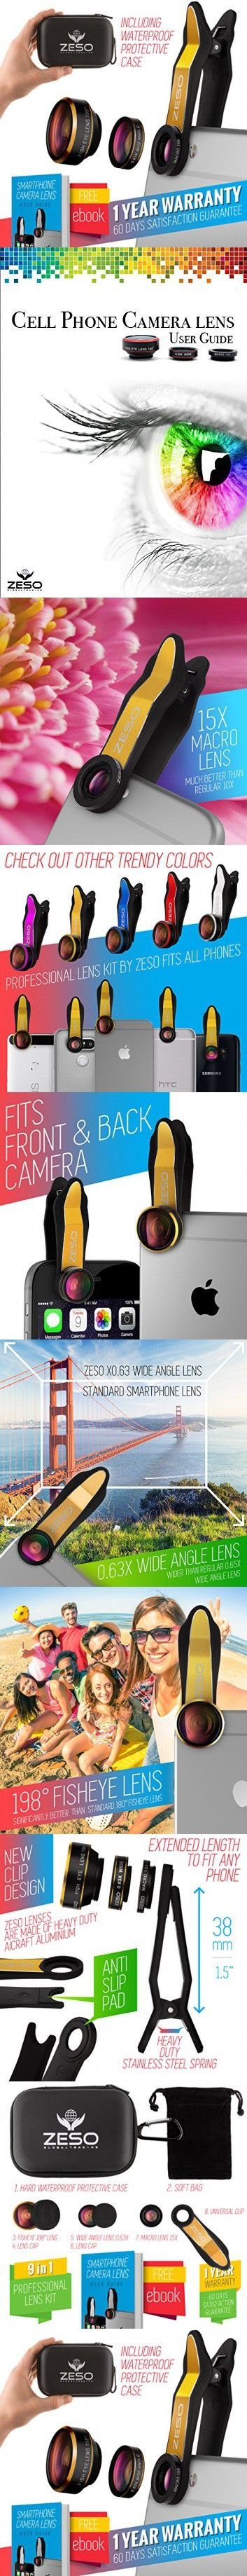 Cell phone camera lens 3 in 1 kit by zeso professional fisheye macro